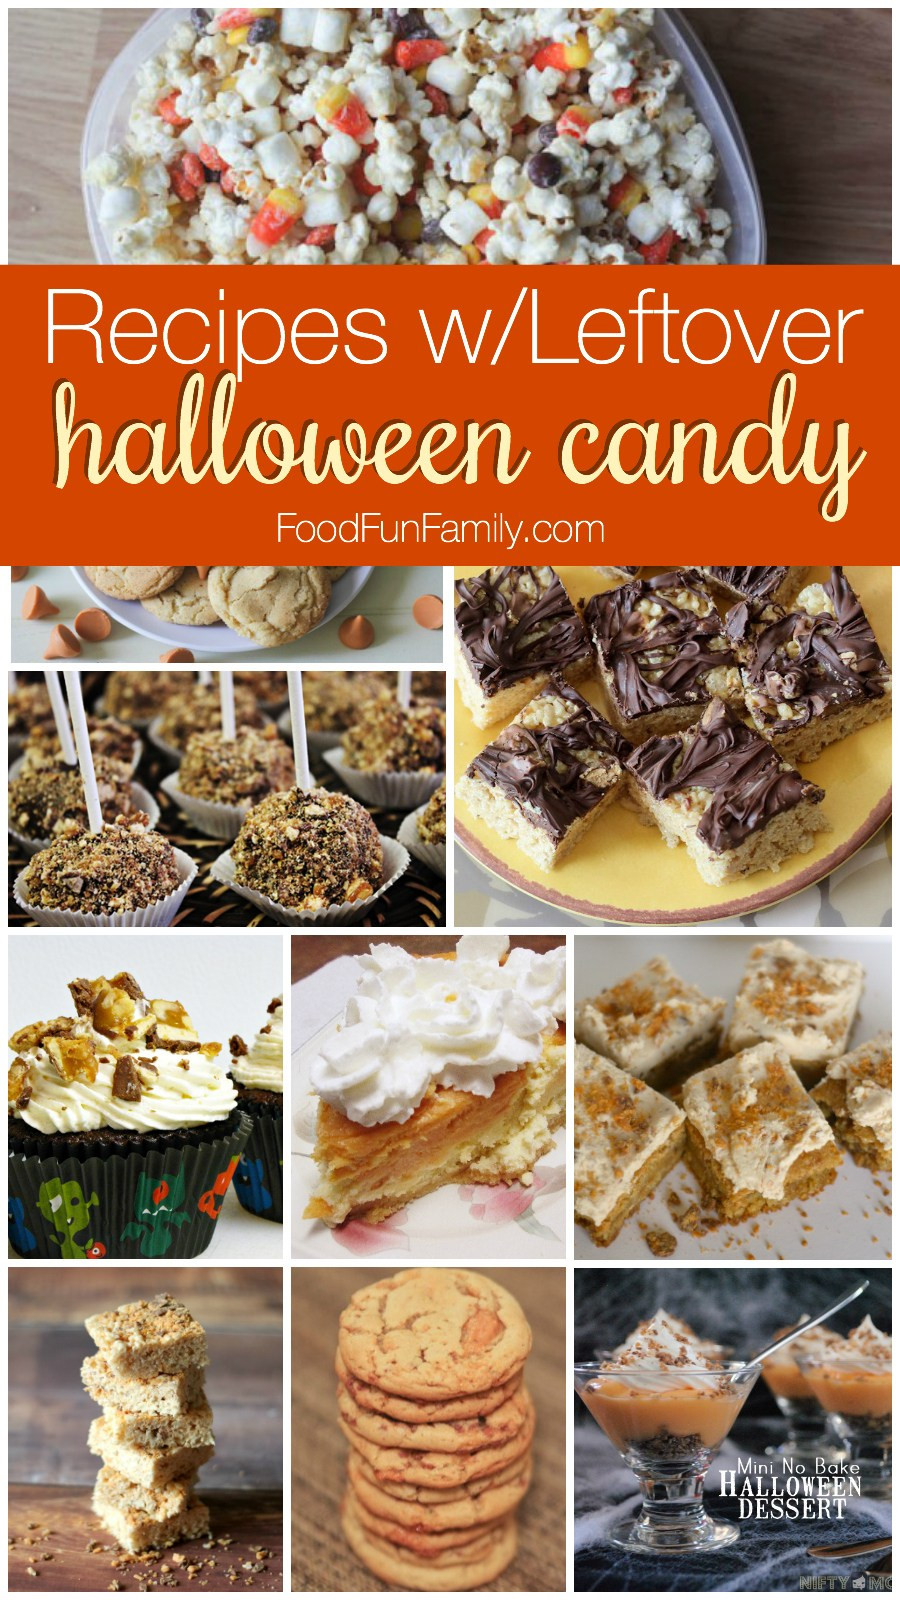 Recipes For Leftover Halloween Candy  Leftover Halloween Candy Recipes and Crafts